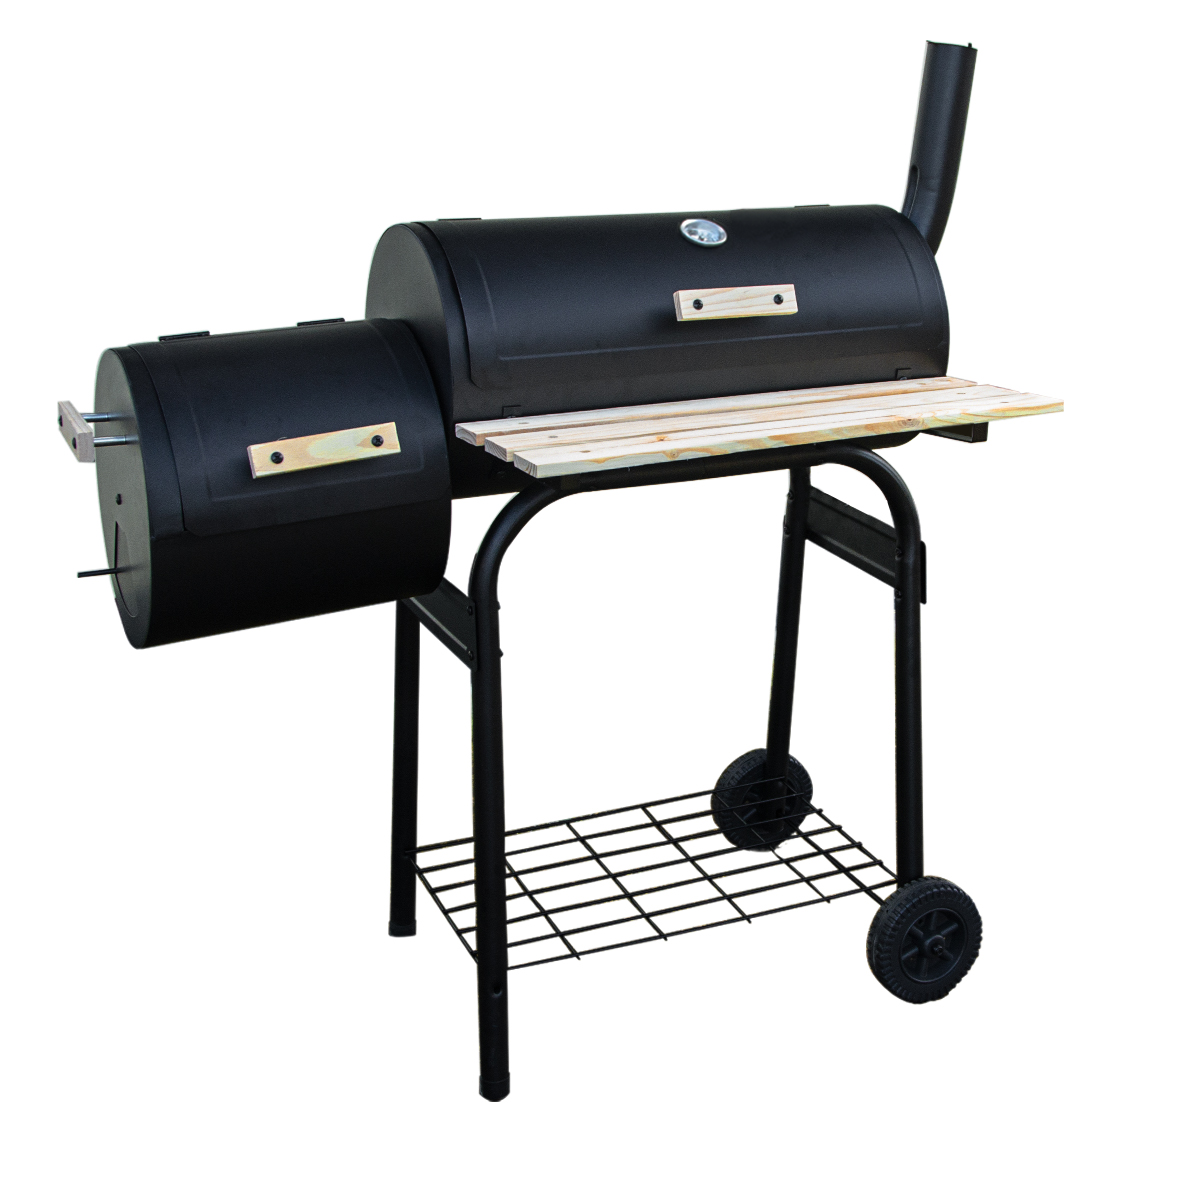 Details About Outdoor Garden Bbq Smokers Portable Smoking Cooking Patio Barbeque Grill Coal